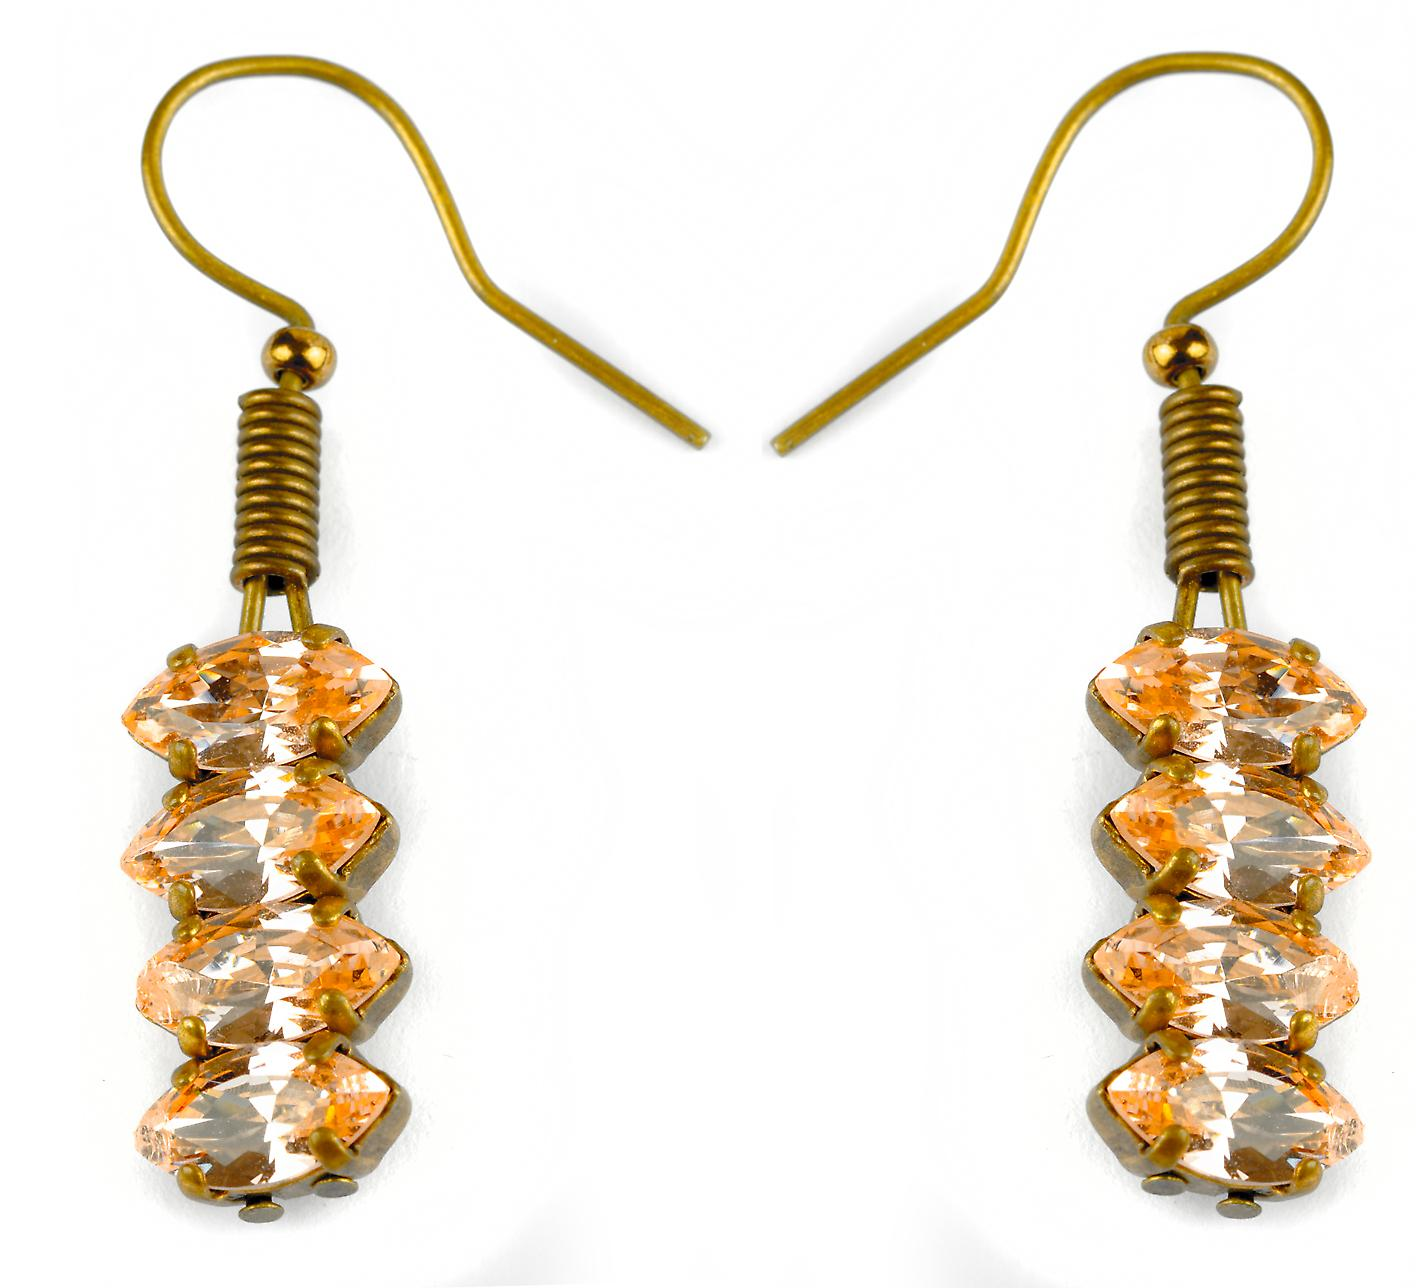 Waooh - Jewelry - WJ0720 - earrings Swarovski Strass transparent - mount colour gold